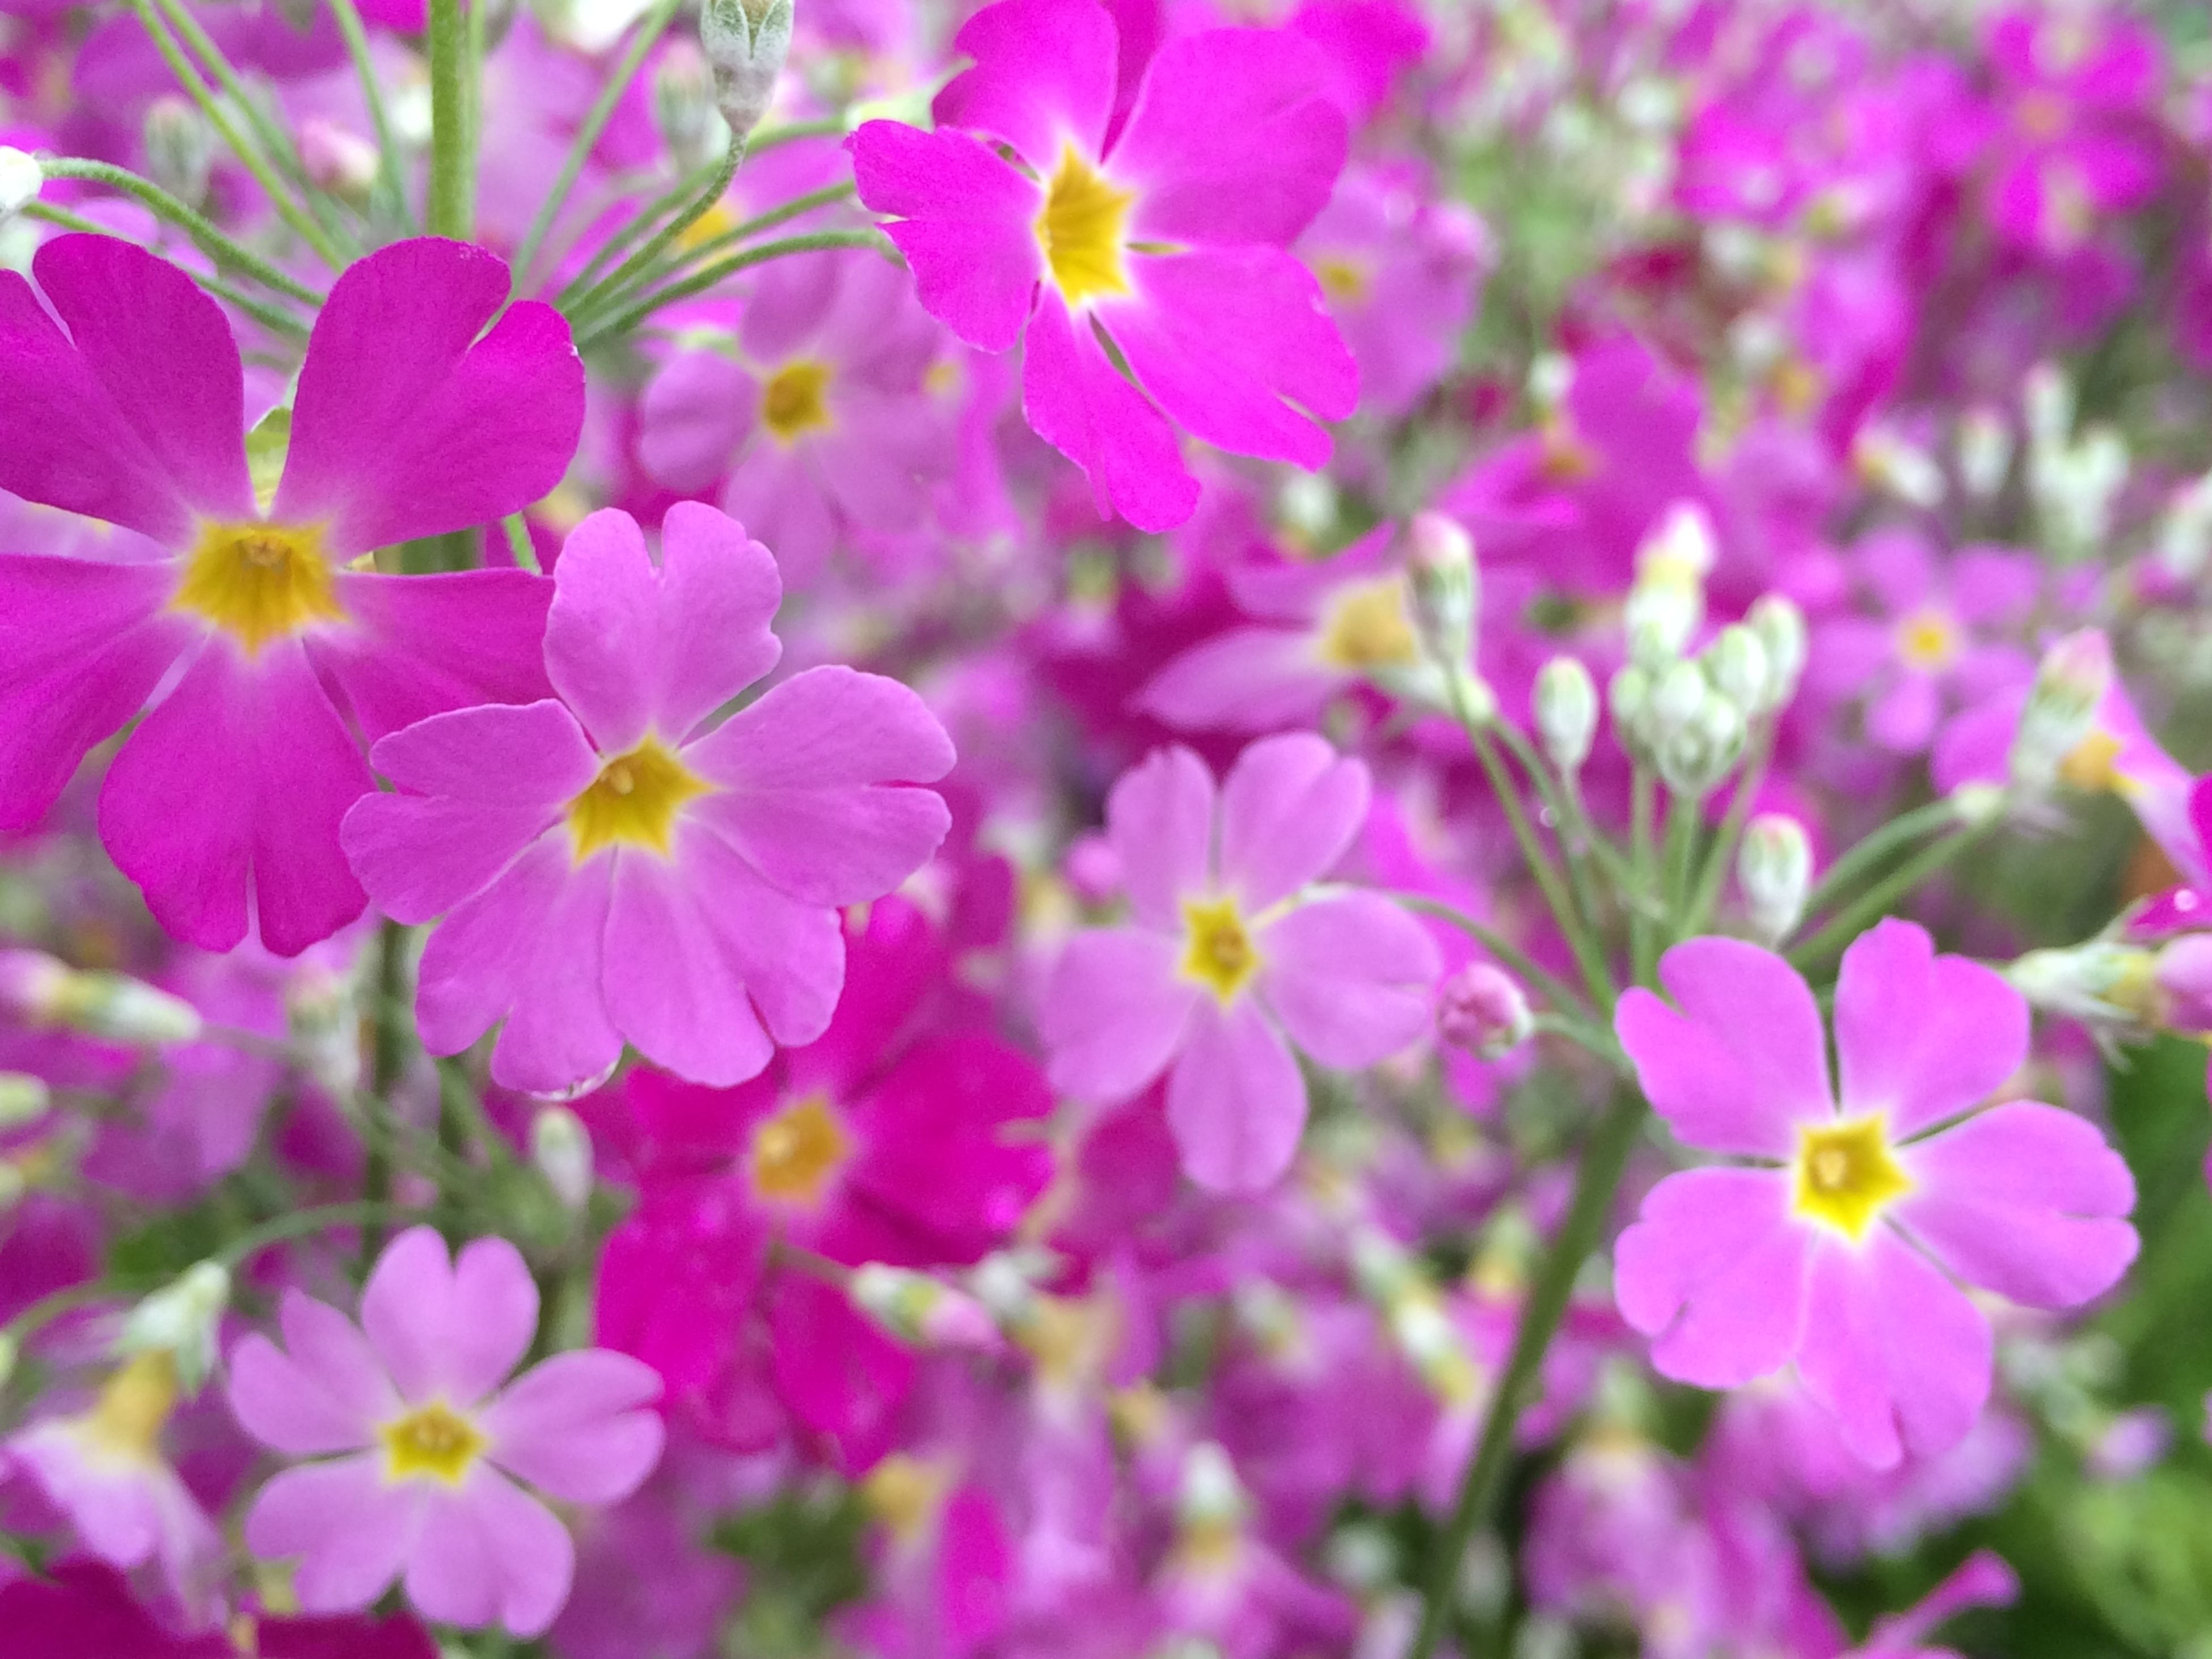 flower, freshness, petal, fragility, growth, beauty in nature, flower head, pink color, blooming, nature, close-up, focus on foreground, in bloom, pollen, blossom, plant, day, selective focus, park - man made space, no people